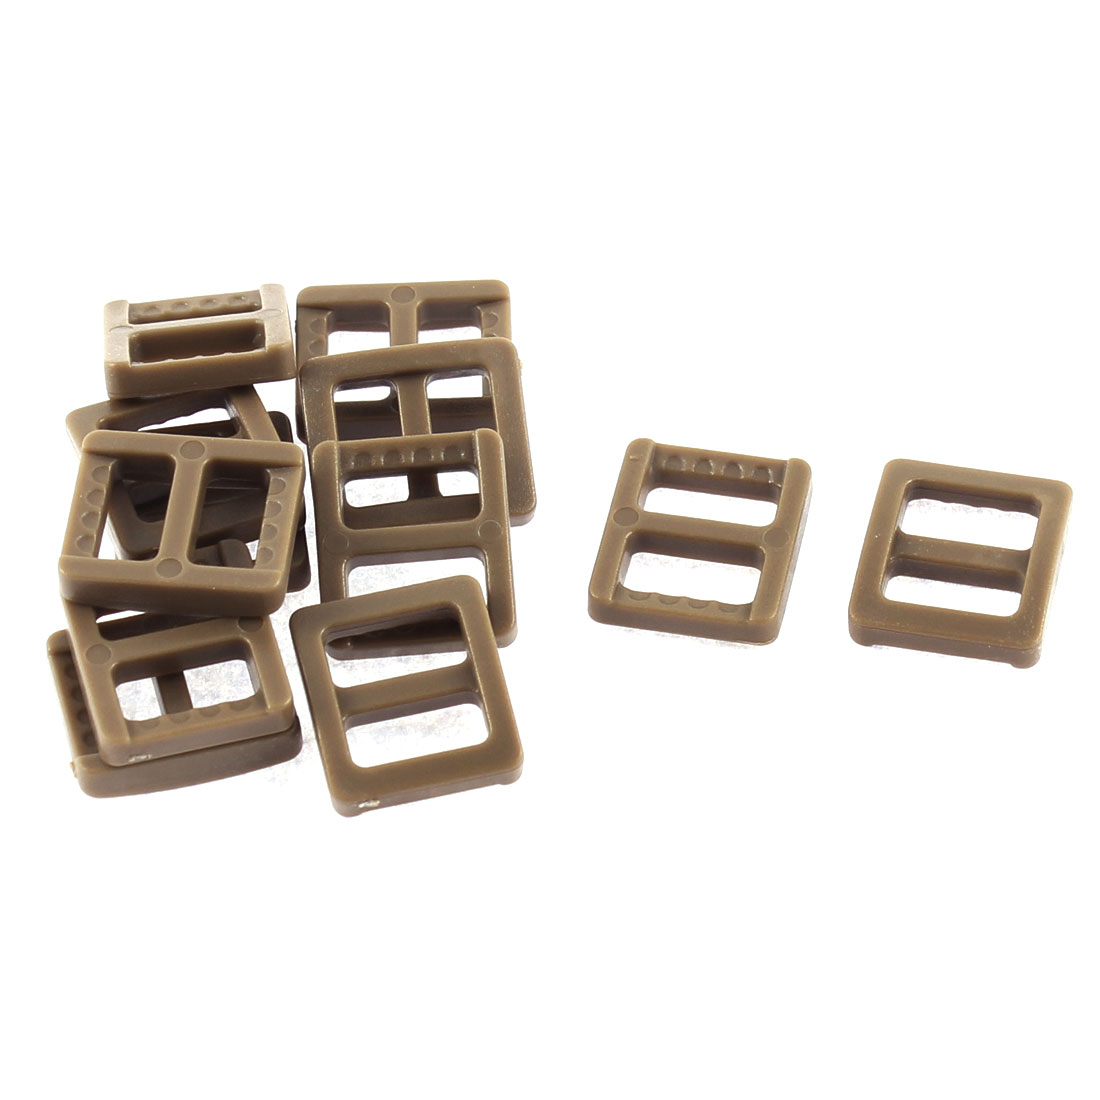 Webbing Bag Plastic Replacement Tri Glide Buckle Strap Keeper Coffee Color 12 Pcs